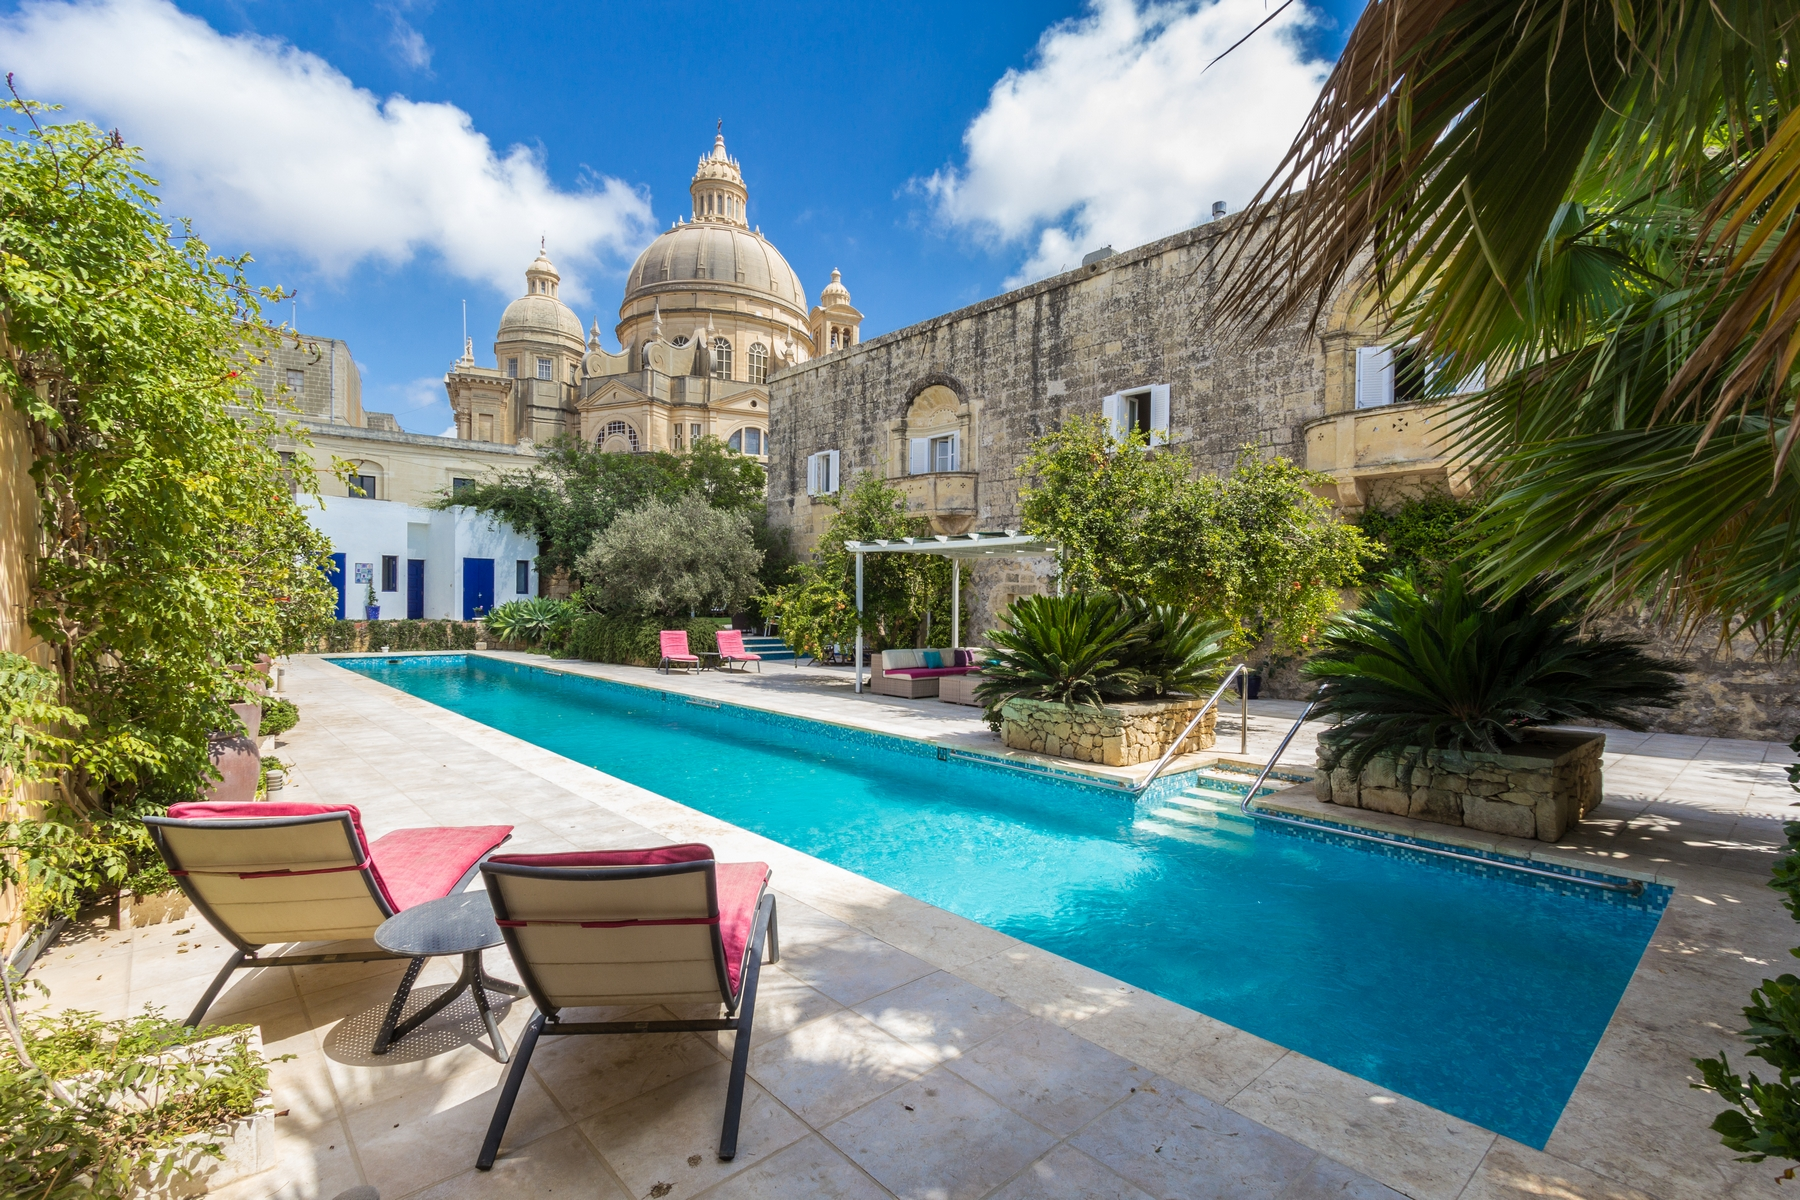 House of Character for Sale at House of Character Xewkija, Gozo Malta